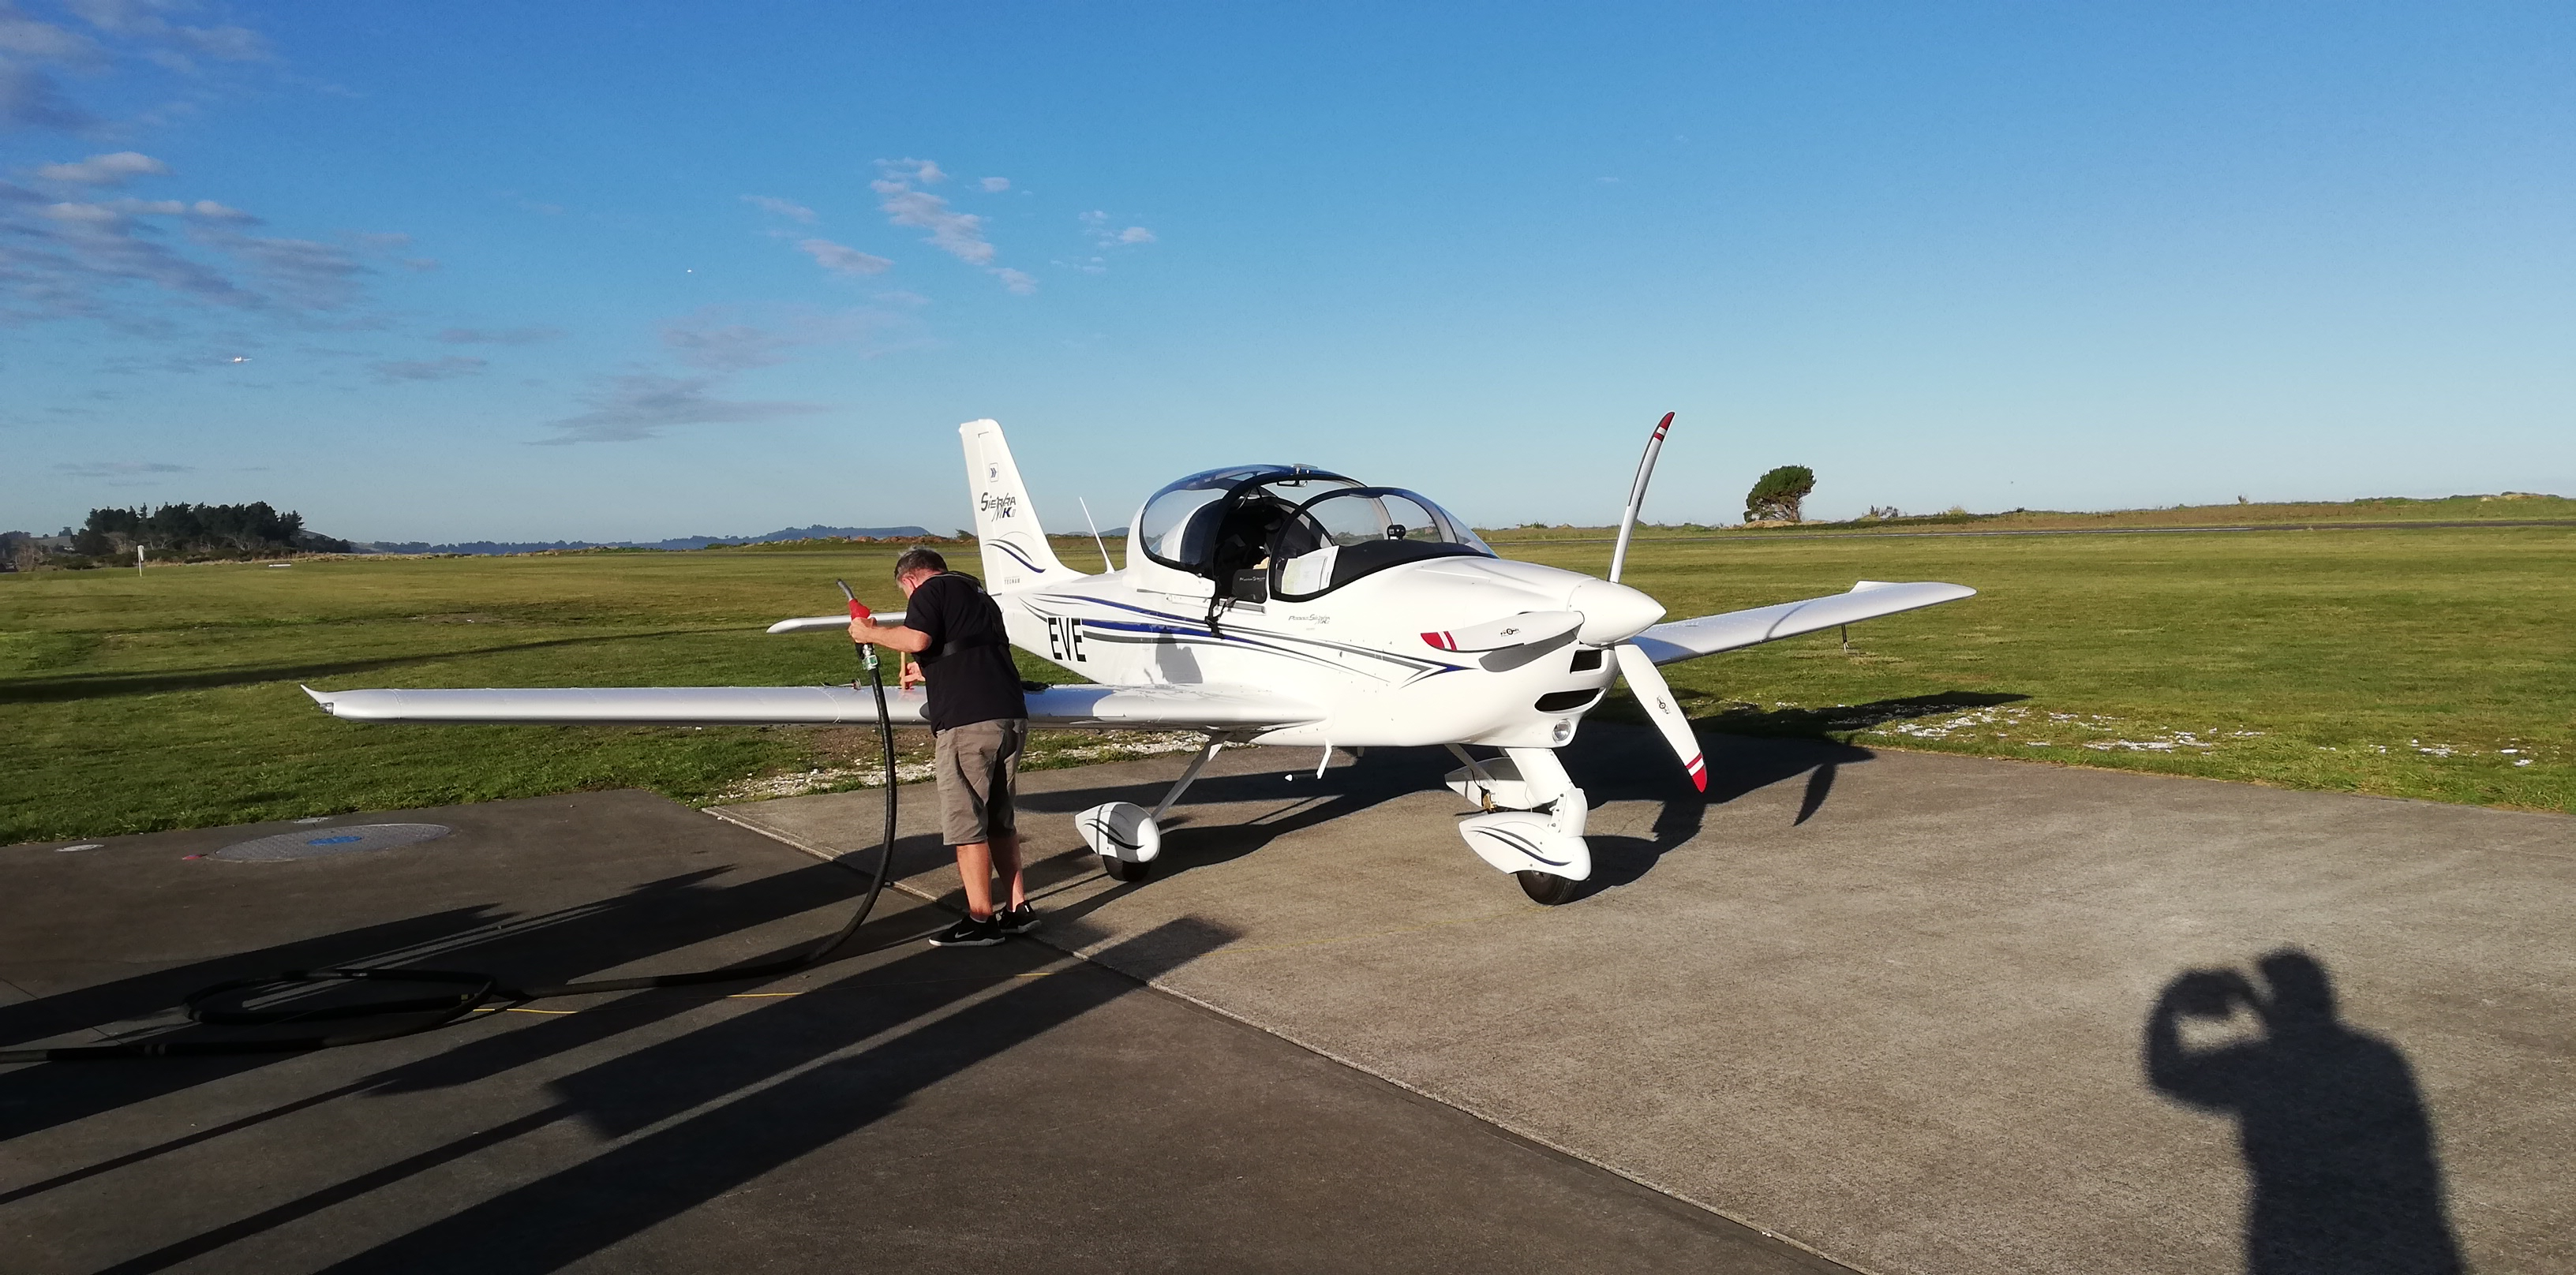 Refuelling at Kaikoura